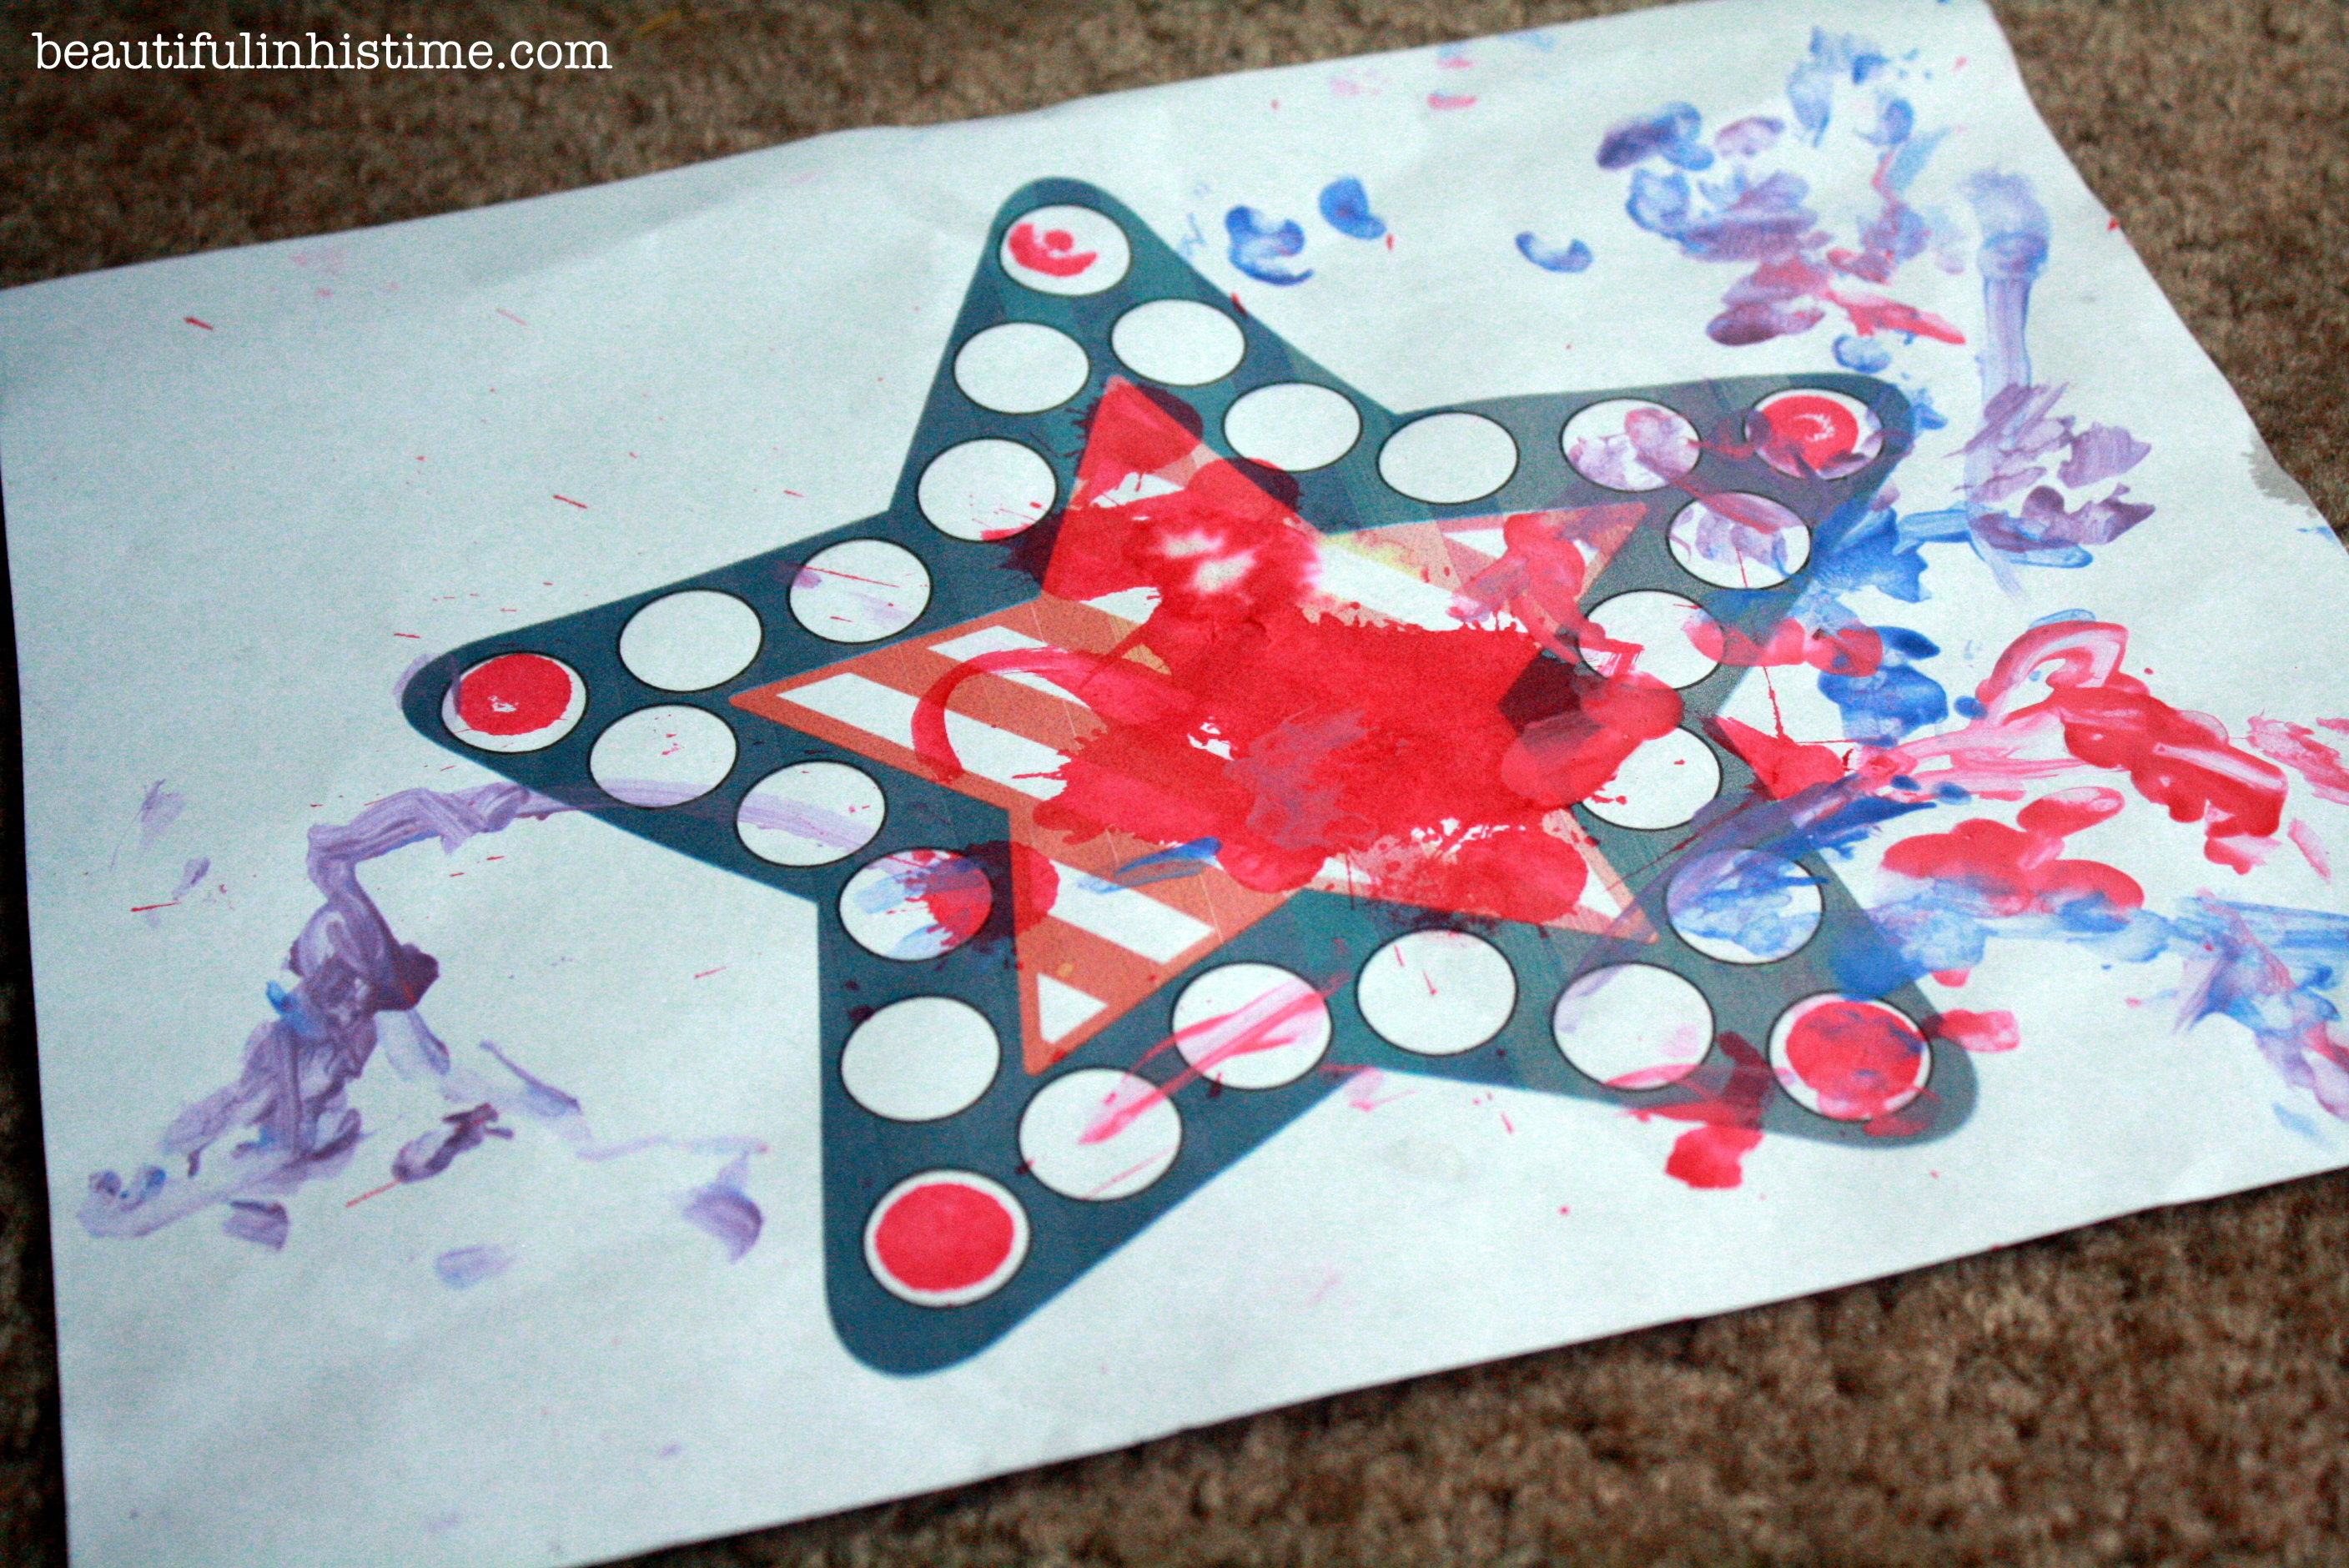 dot painting with qtips #preschool #painting #homeschool